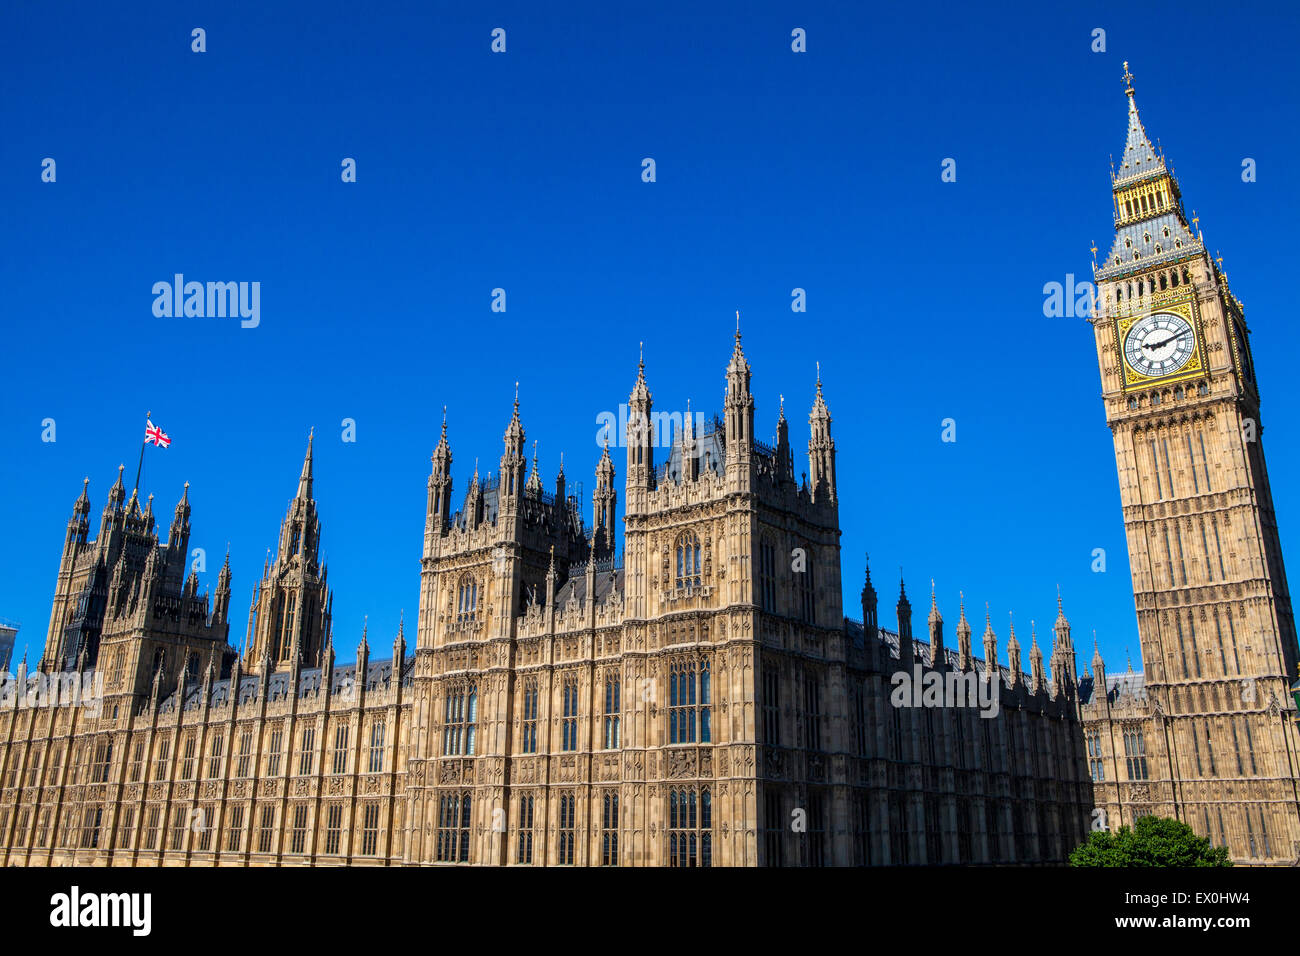 A view of the iconic Palace of Westminster in London. - Stock Image